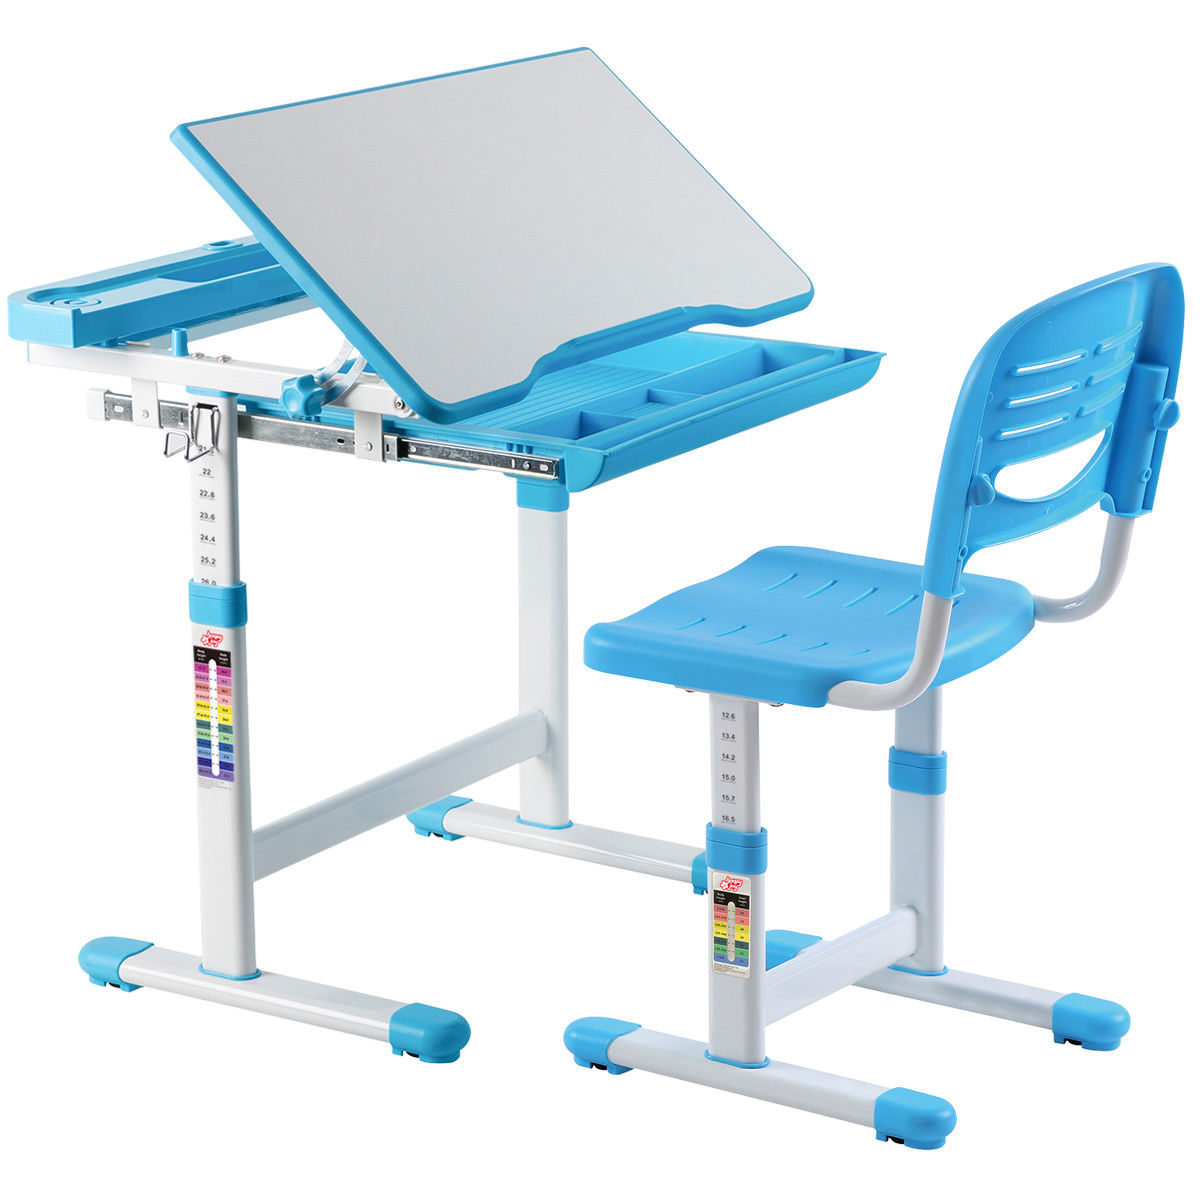 Attirant Gymax Height Adjustable Childrenu0027s Desk Chair Set Multifunctional Study  Drawing Blue   Walmart.com